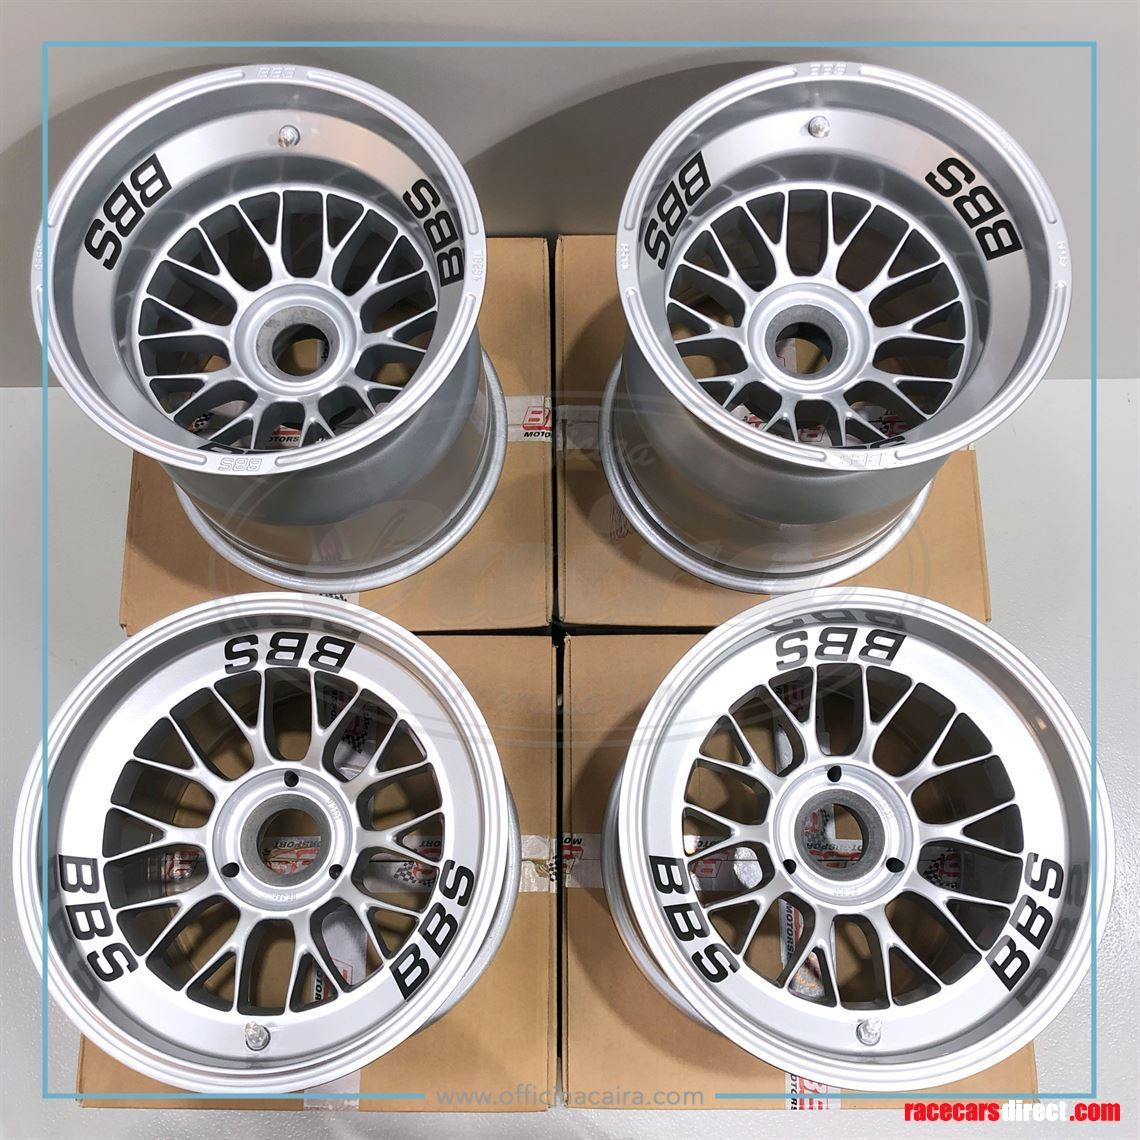 arrows-a21-formula-one---2000---set-bbs-rims